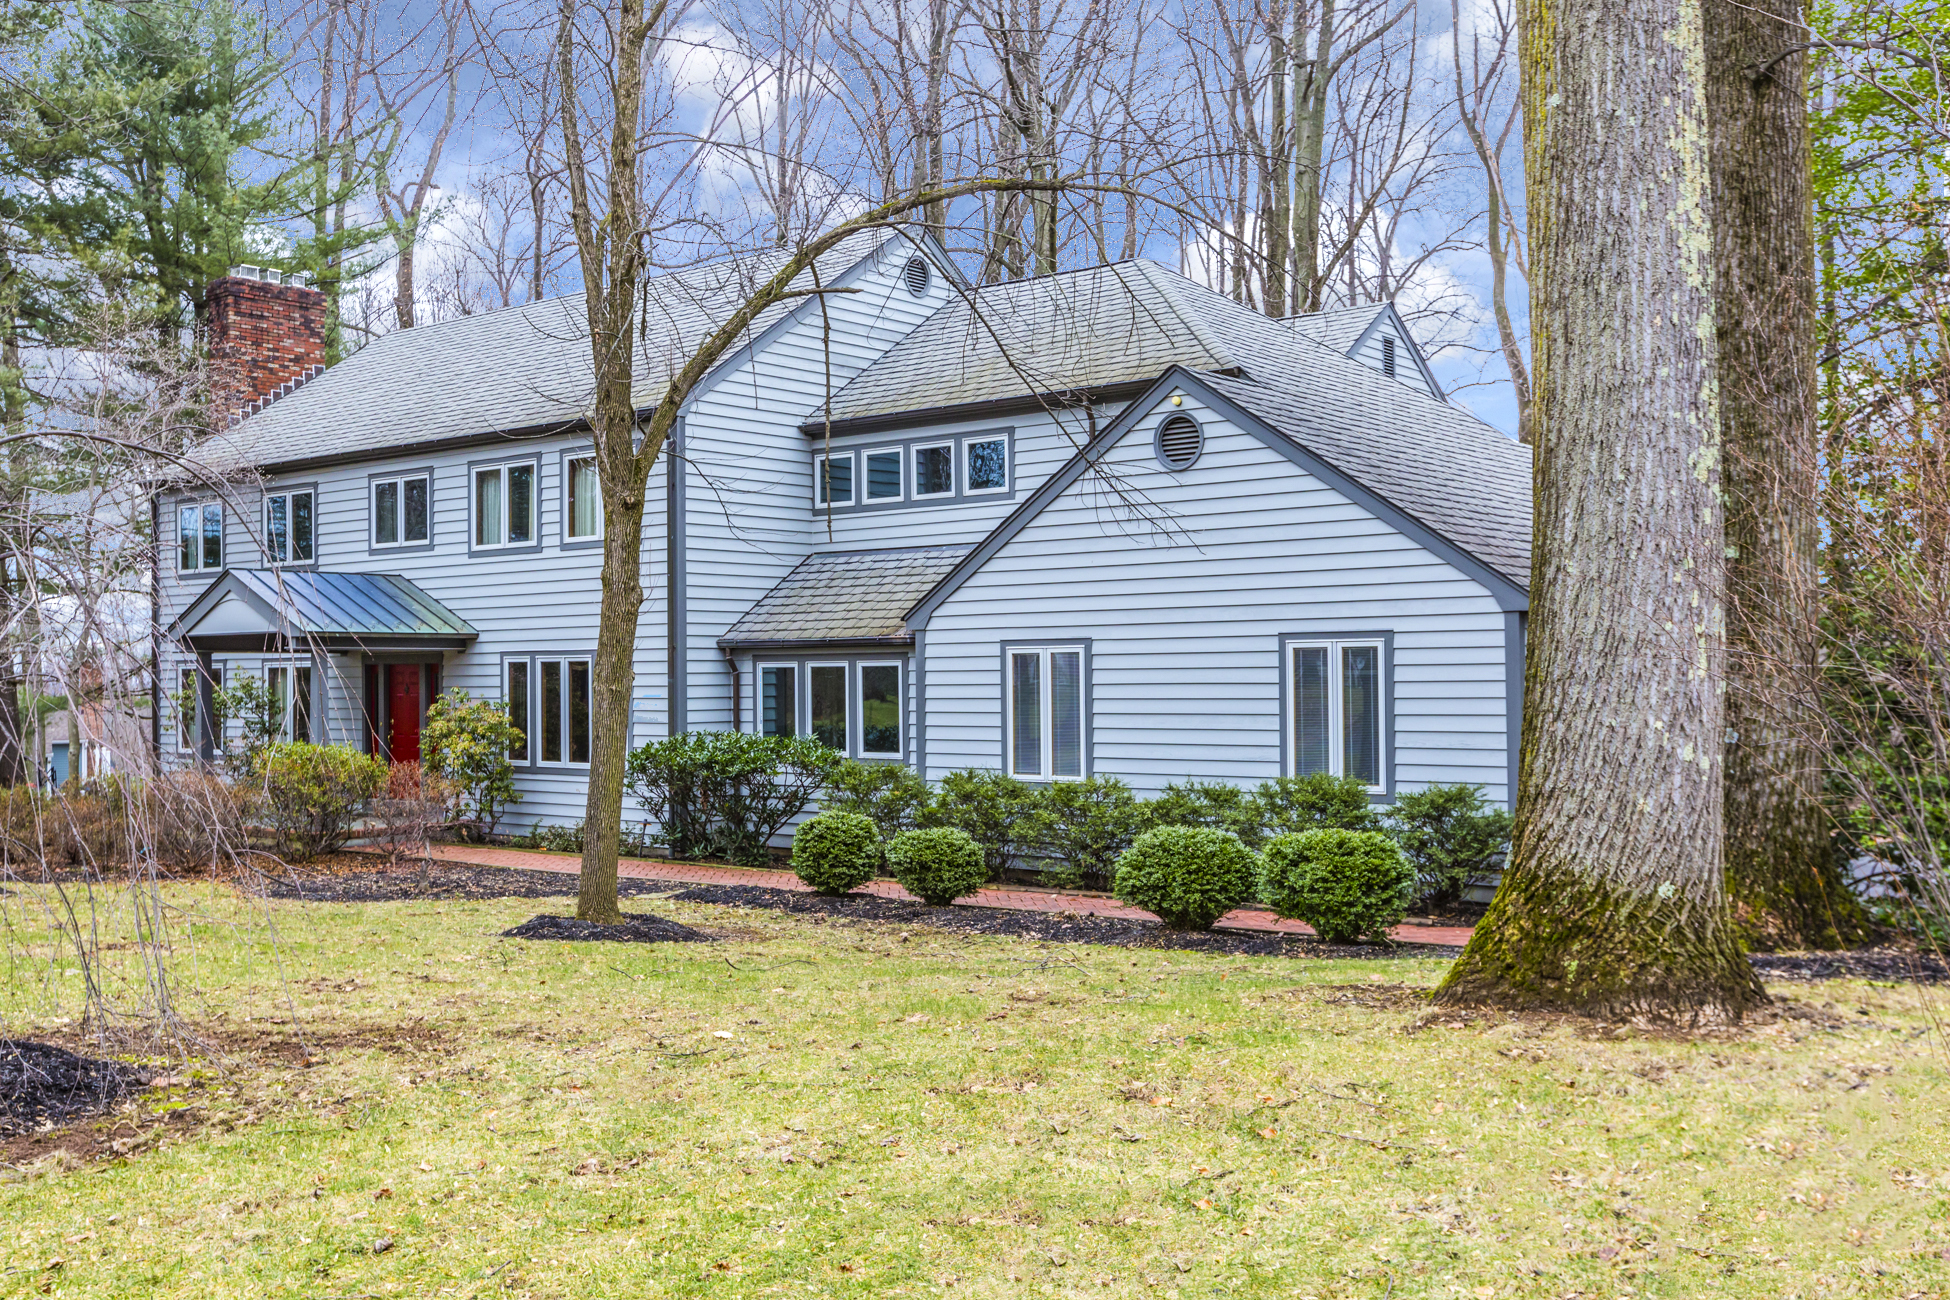 Single Family Home for Sale at Princeton Cul-De-Sac Home Impresses and Inspires 89 Dogwood Hill Princeton, New Jersey, 08540 United States